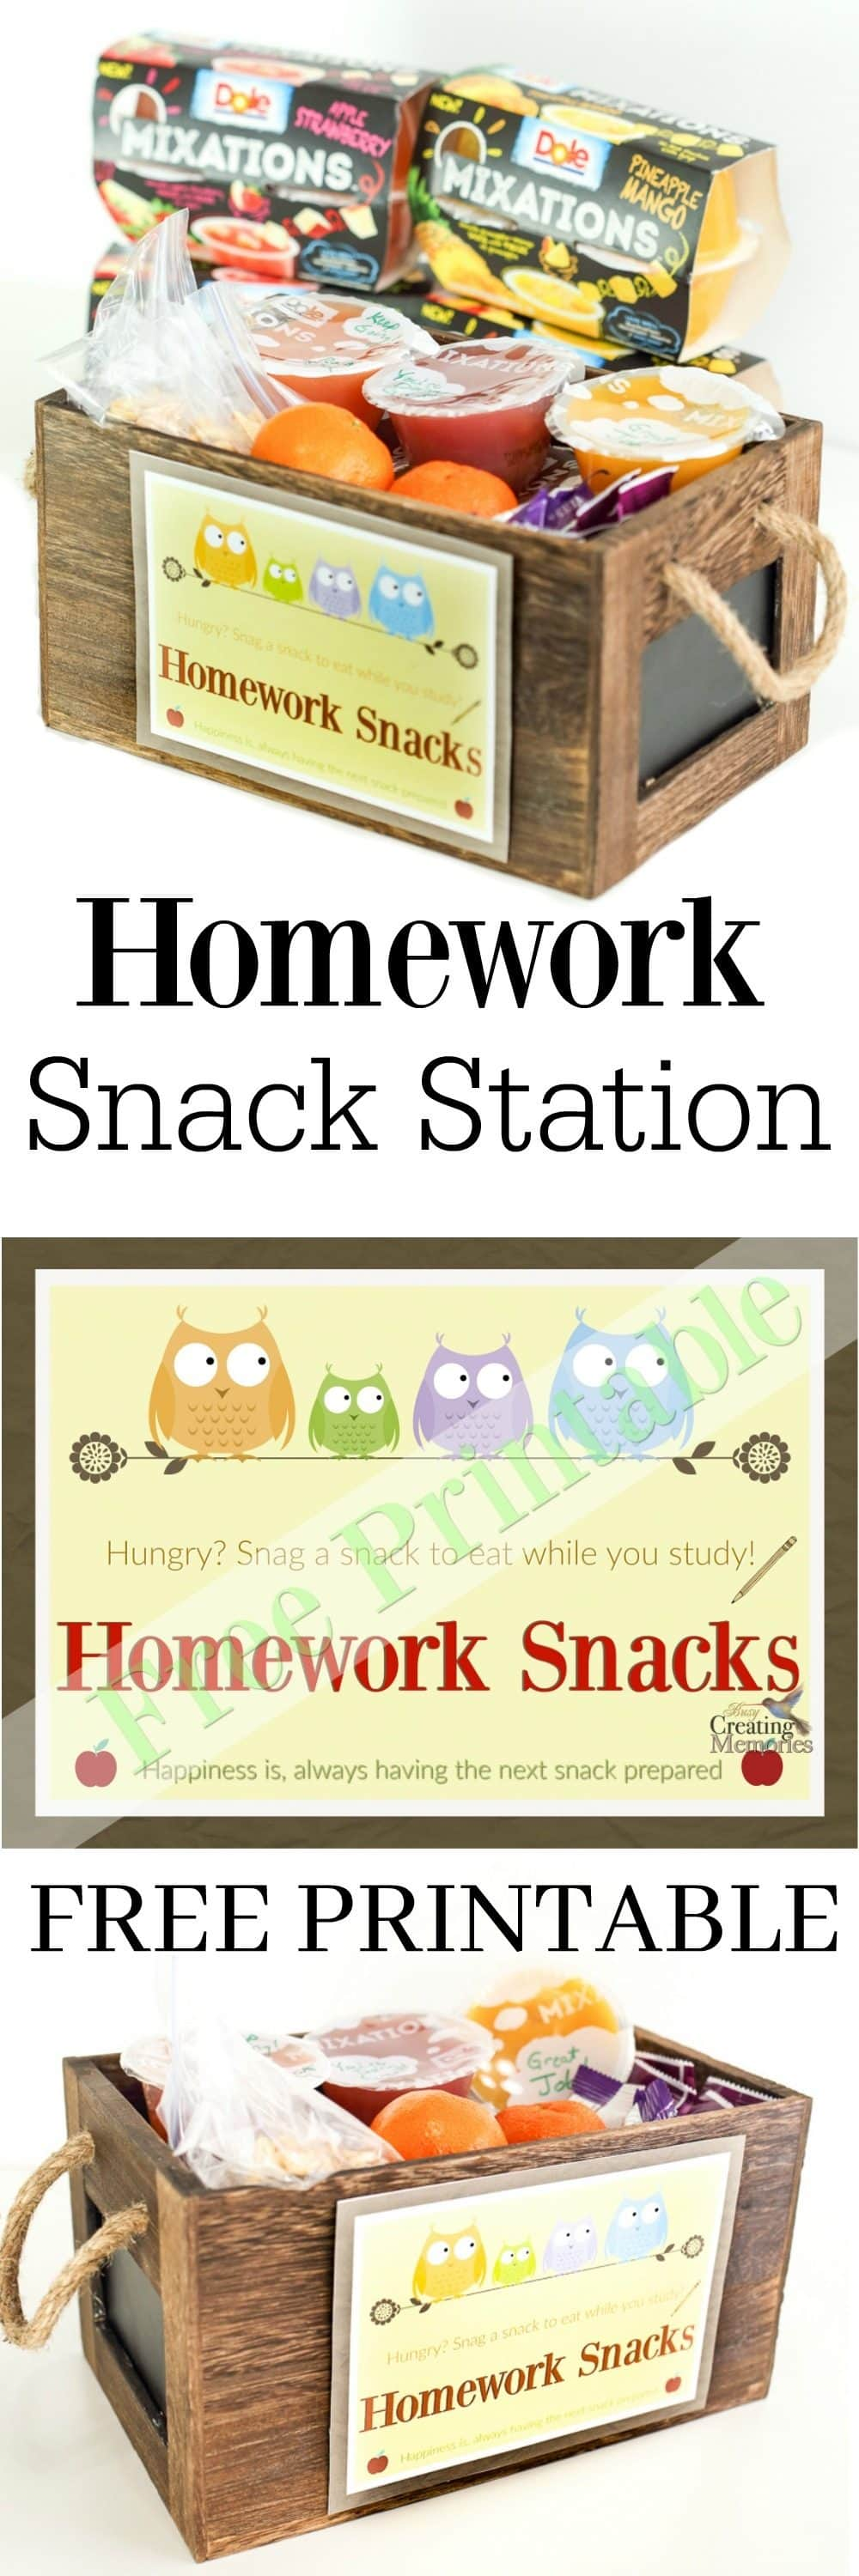 Don't let hungry kids ruin your evening! Set up a simple Homework Snack Station w/ free printable! Kids enjoy a healthy snack while they work on homework.